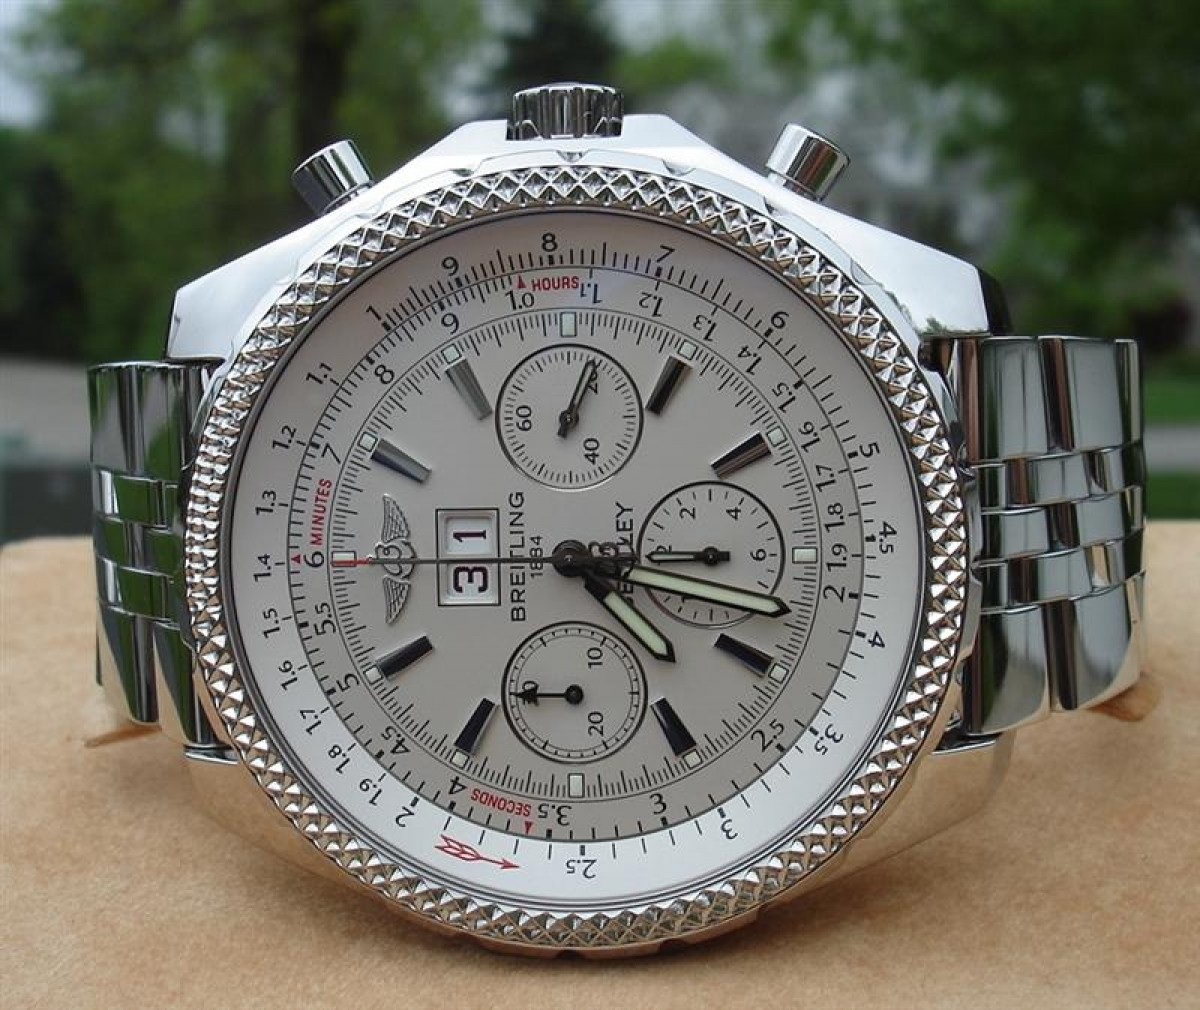 Breitling Bentley 6.75 Replica Horloges